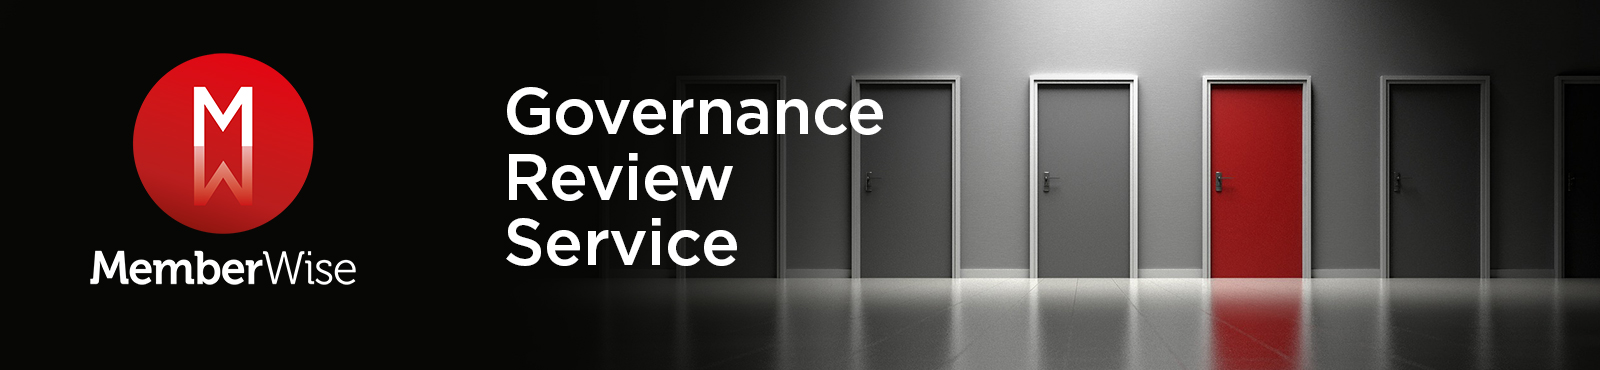 Governance Review Service